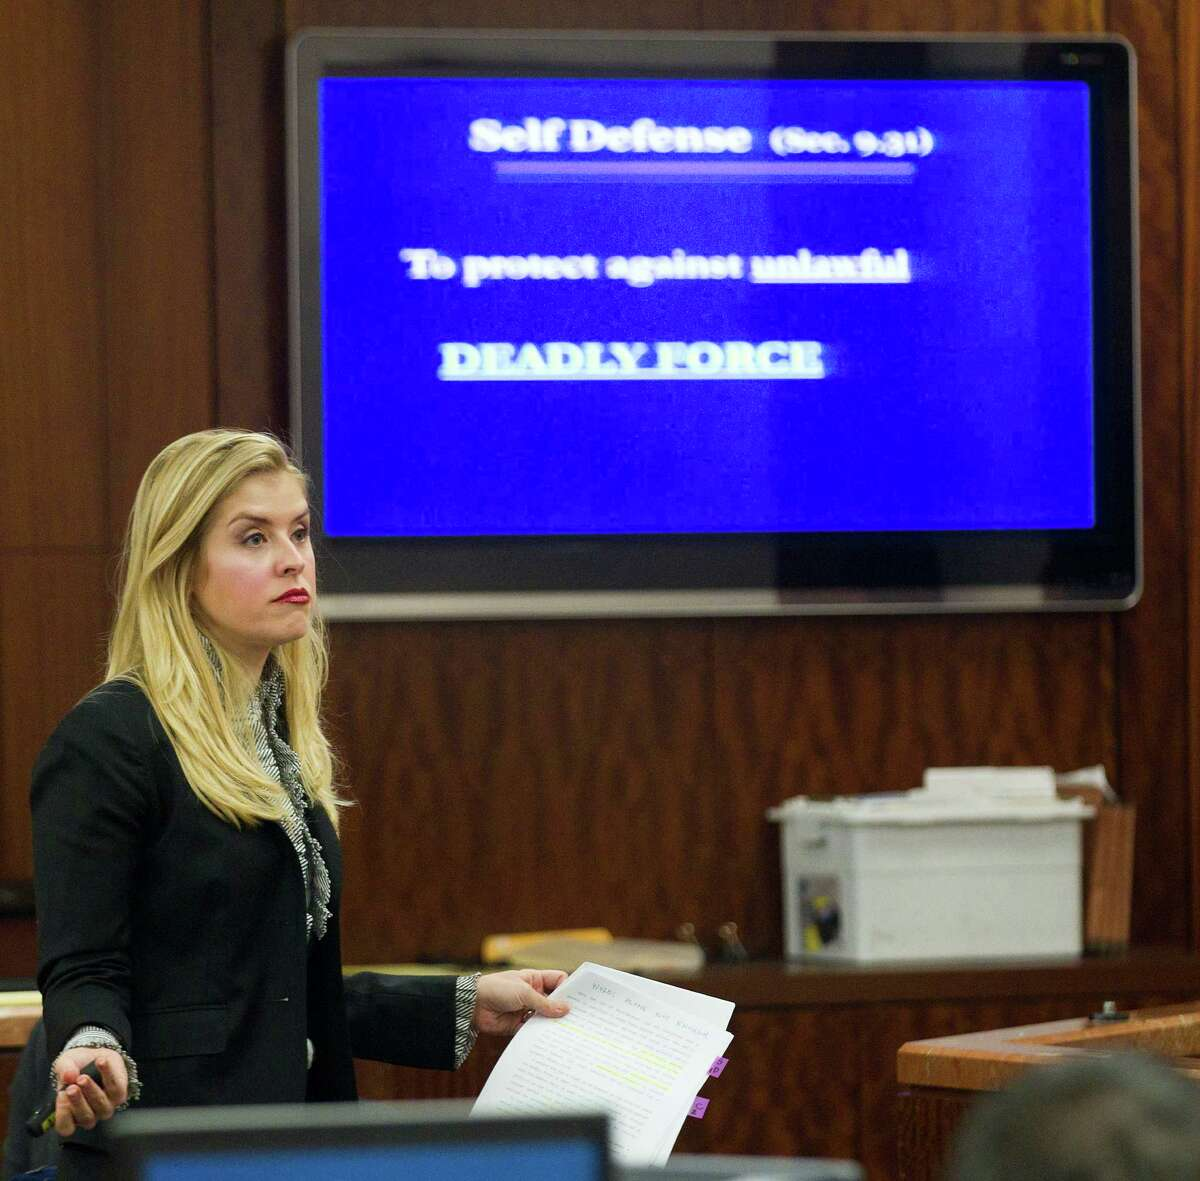 Prosecutor Sarah Mickelson gives her closing argument in the trail against Ana Lilia Trujillo Tuesday, April 8, 2014, in Houston. Trujillo, 45, is charged with murder, accused of killing her 59-year-old boyfriend, Alf Stefan Andersson with the heel of a stiletto shoe, at his Museum District high-rise condominium in June 2013. ( Brett Coomer / Houston Chronicle )